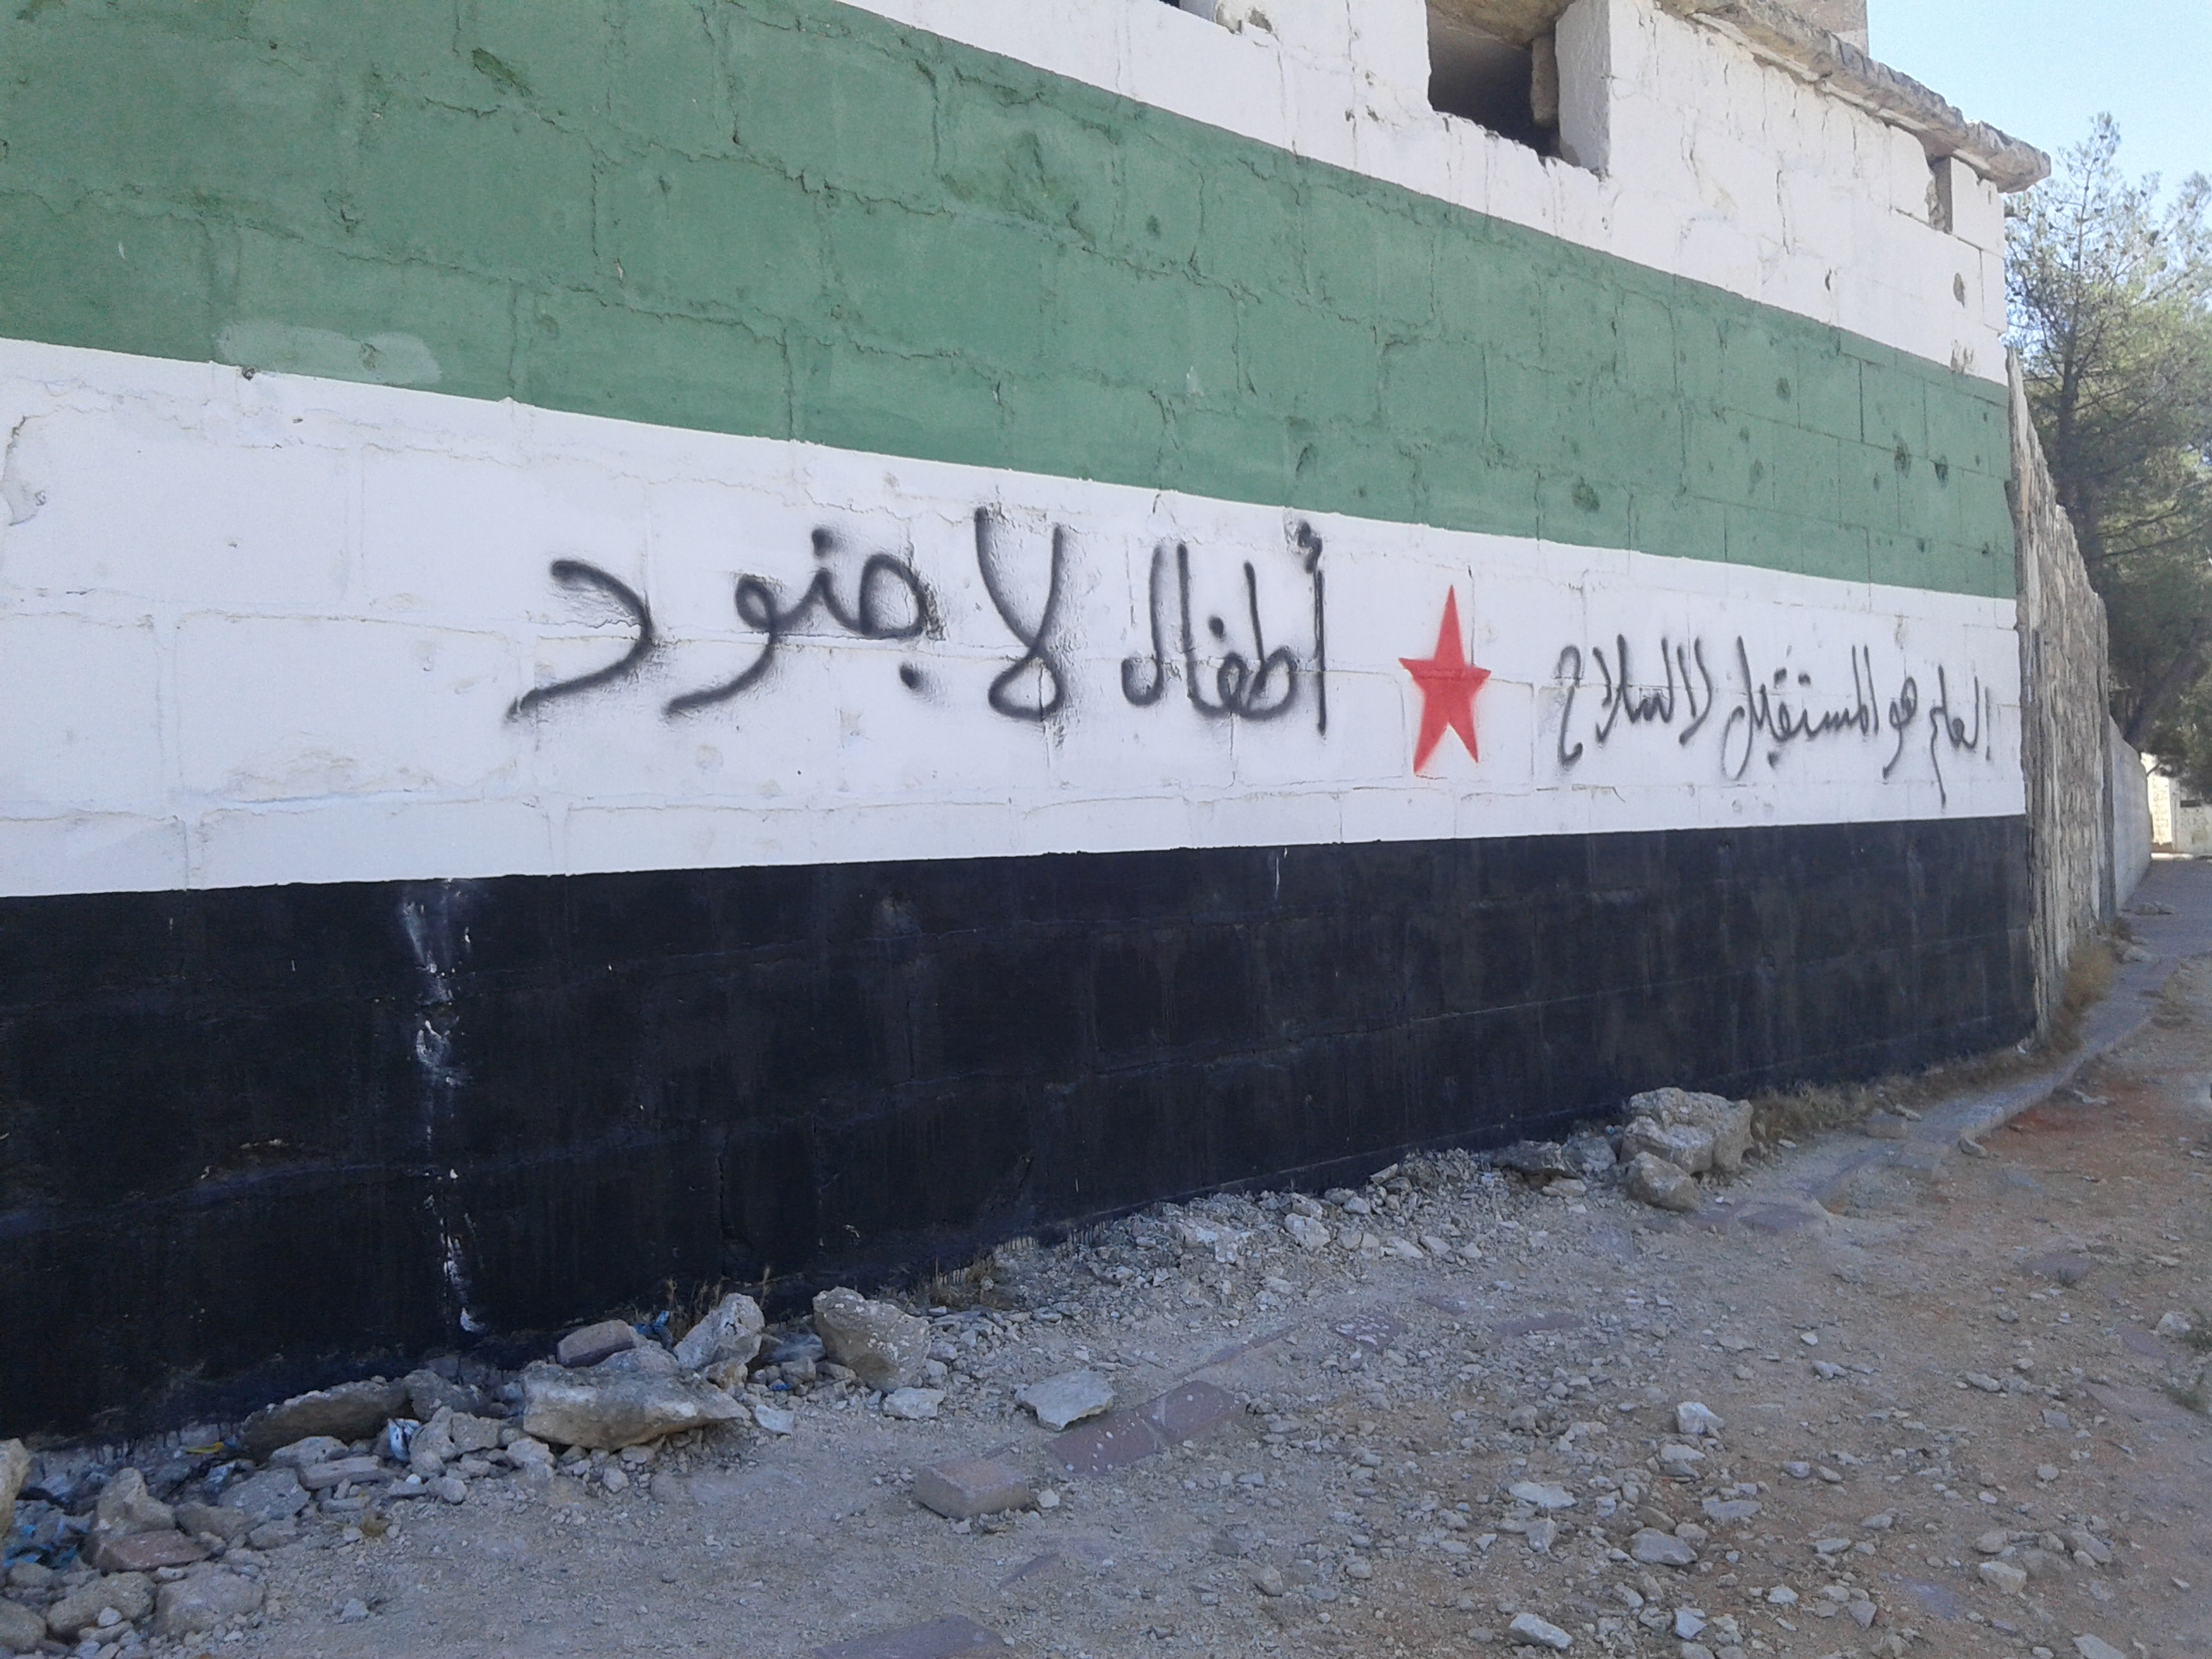 A slogan scrawled on a wall in Idlib. Photo: Marwa Hassan